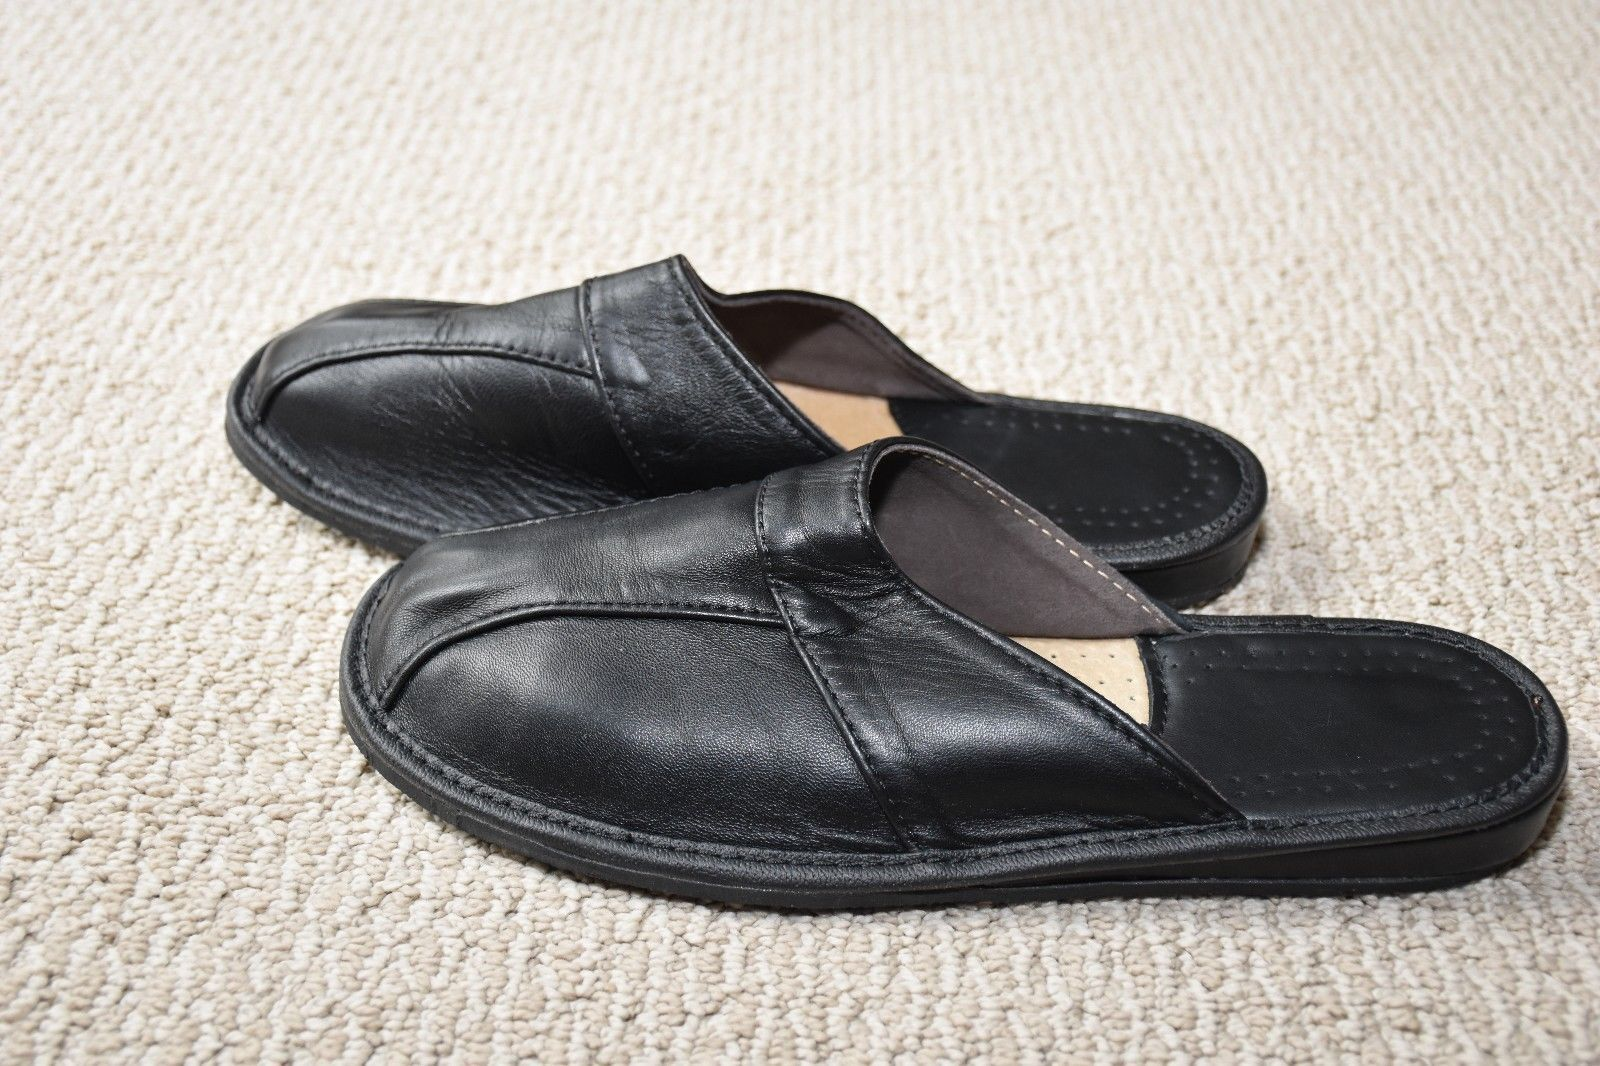 Leather House sheepskin Scuff or Slide Slippers Light Weight